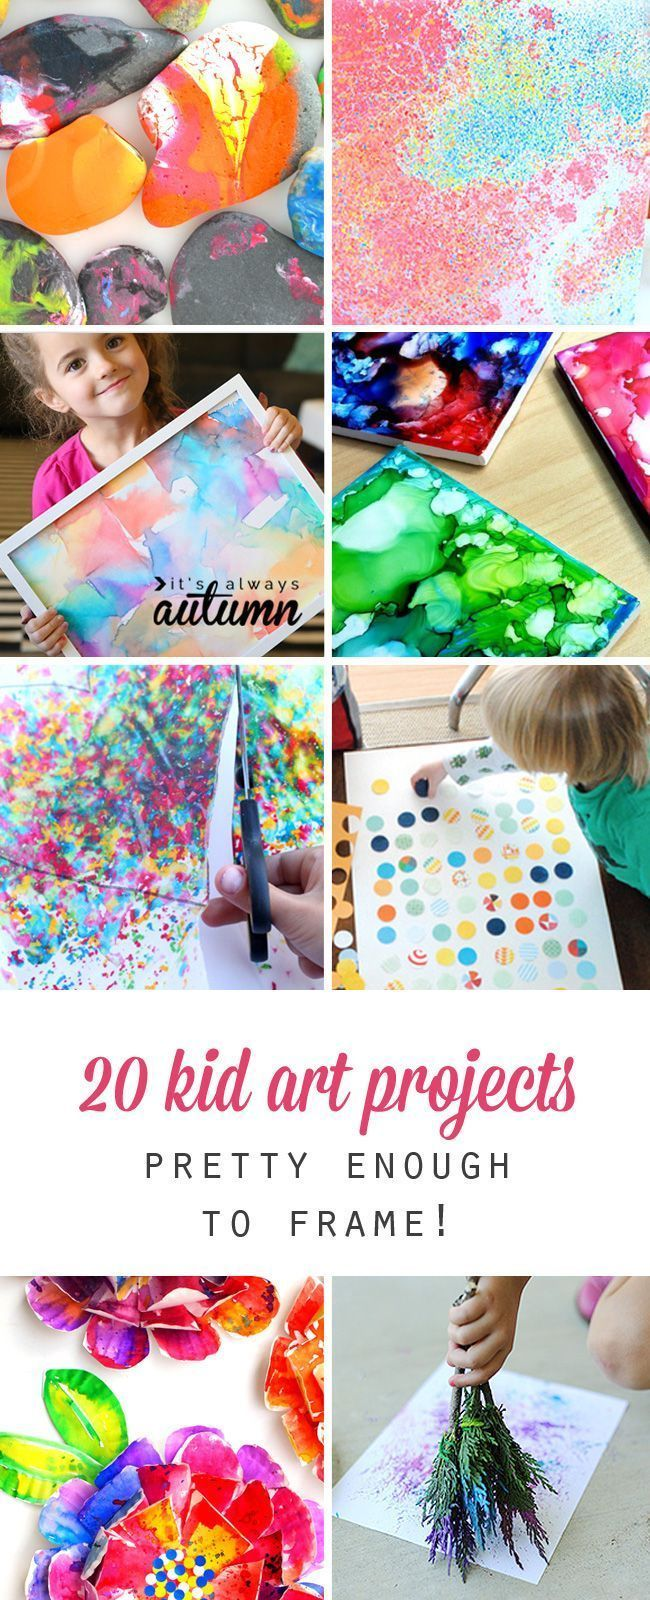 20 Kid Art Projects Pretty Enough To Frame Art For Kids